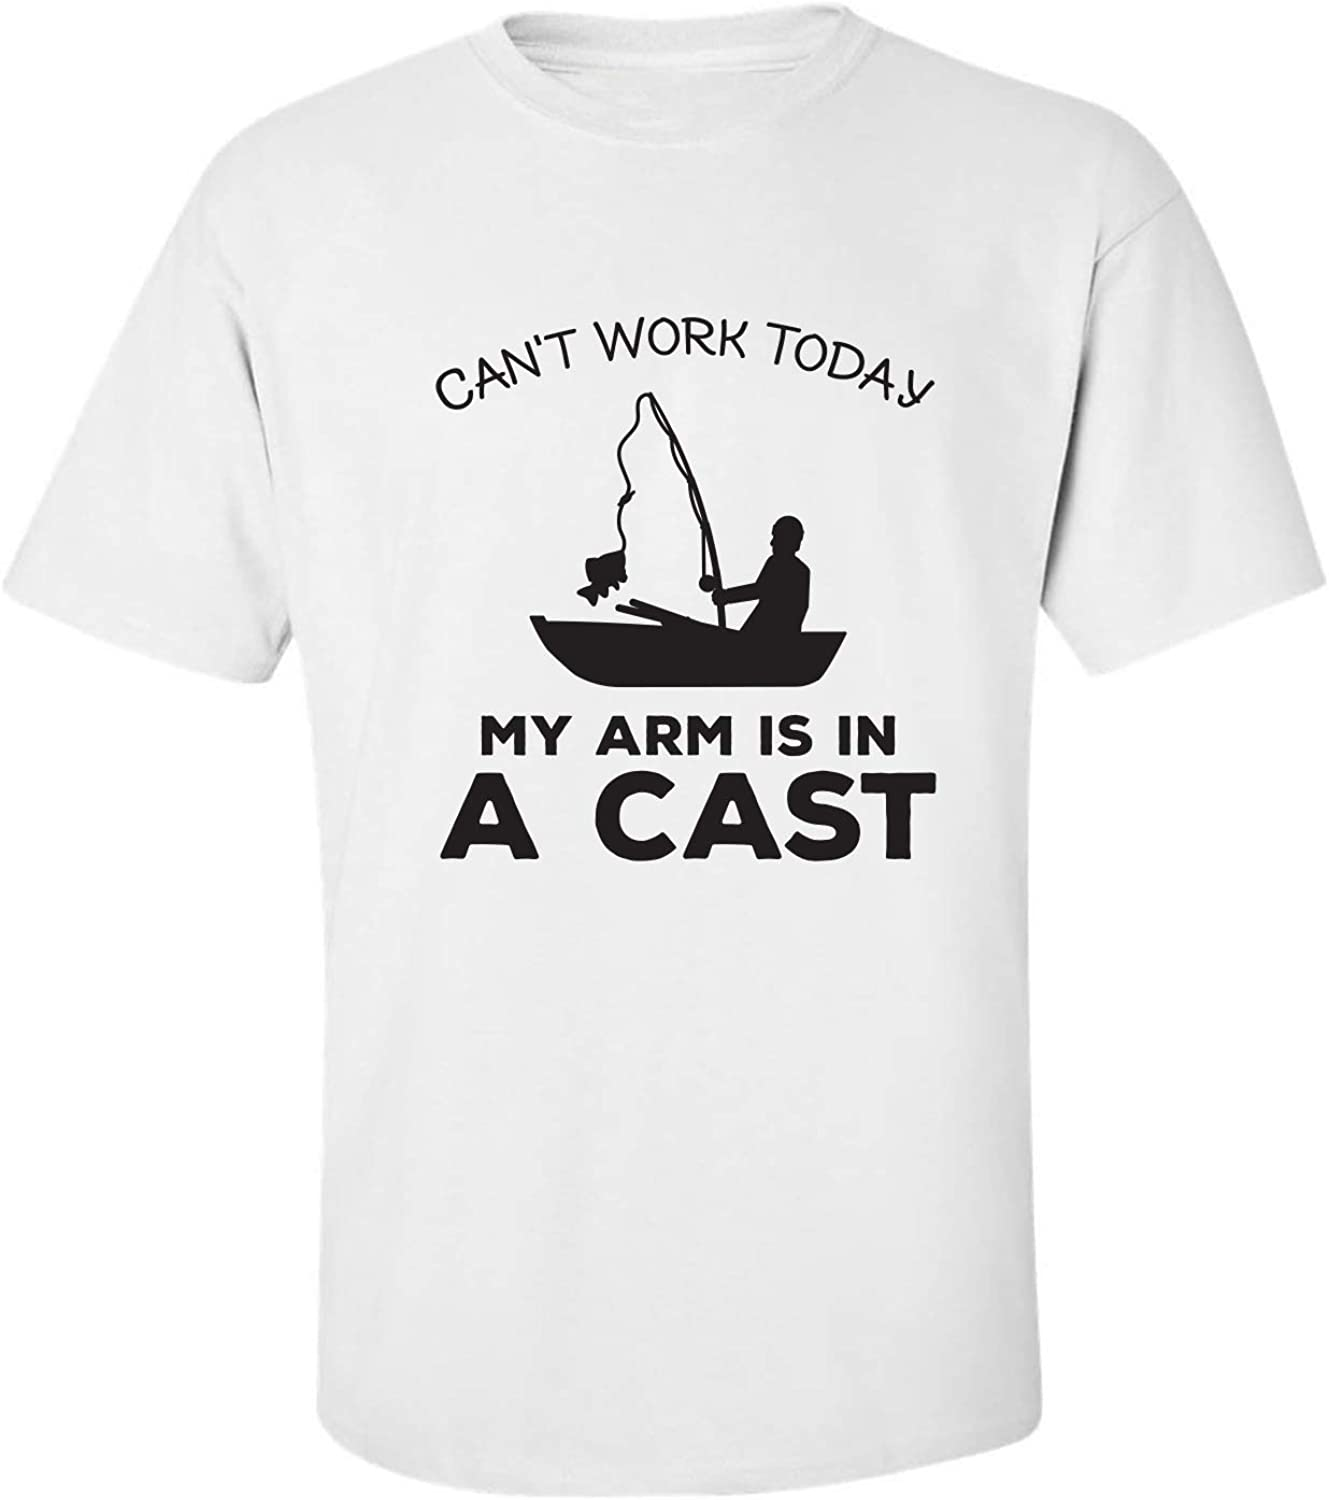 Can't Work Today.Arm in A Cast Adult Short Sleeve T-Shirt